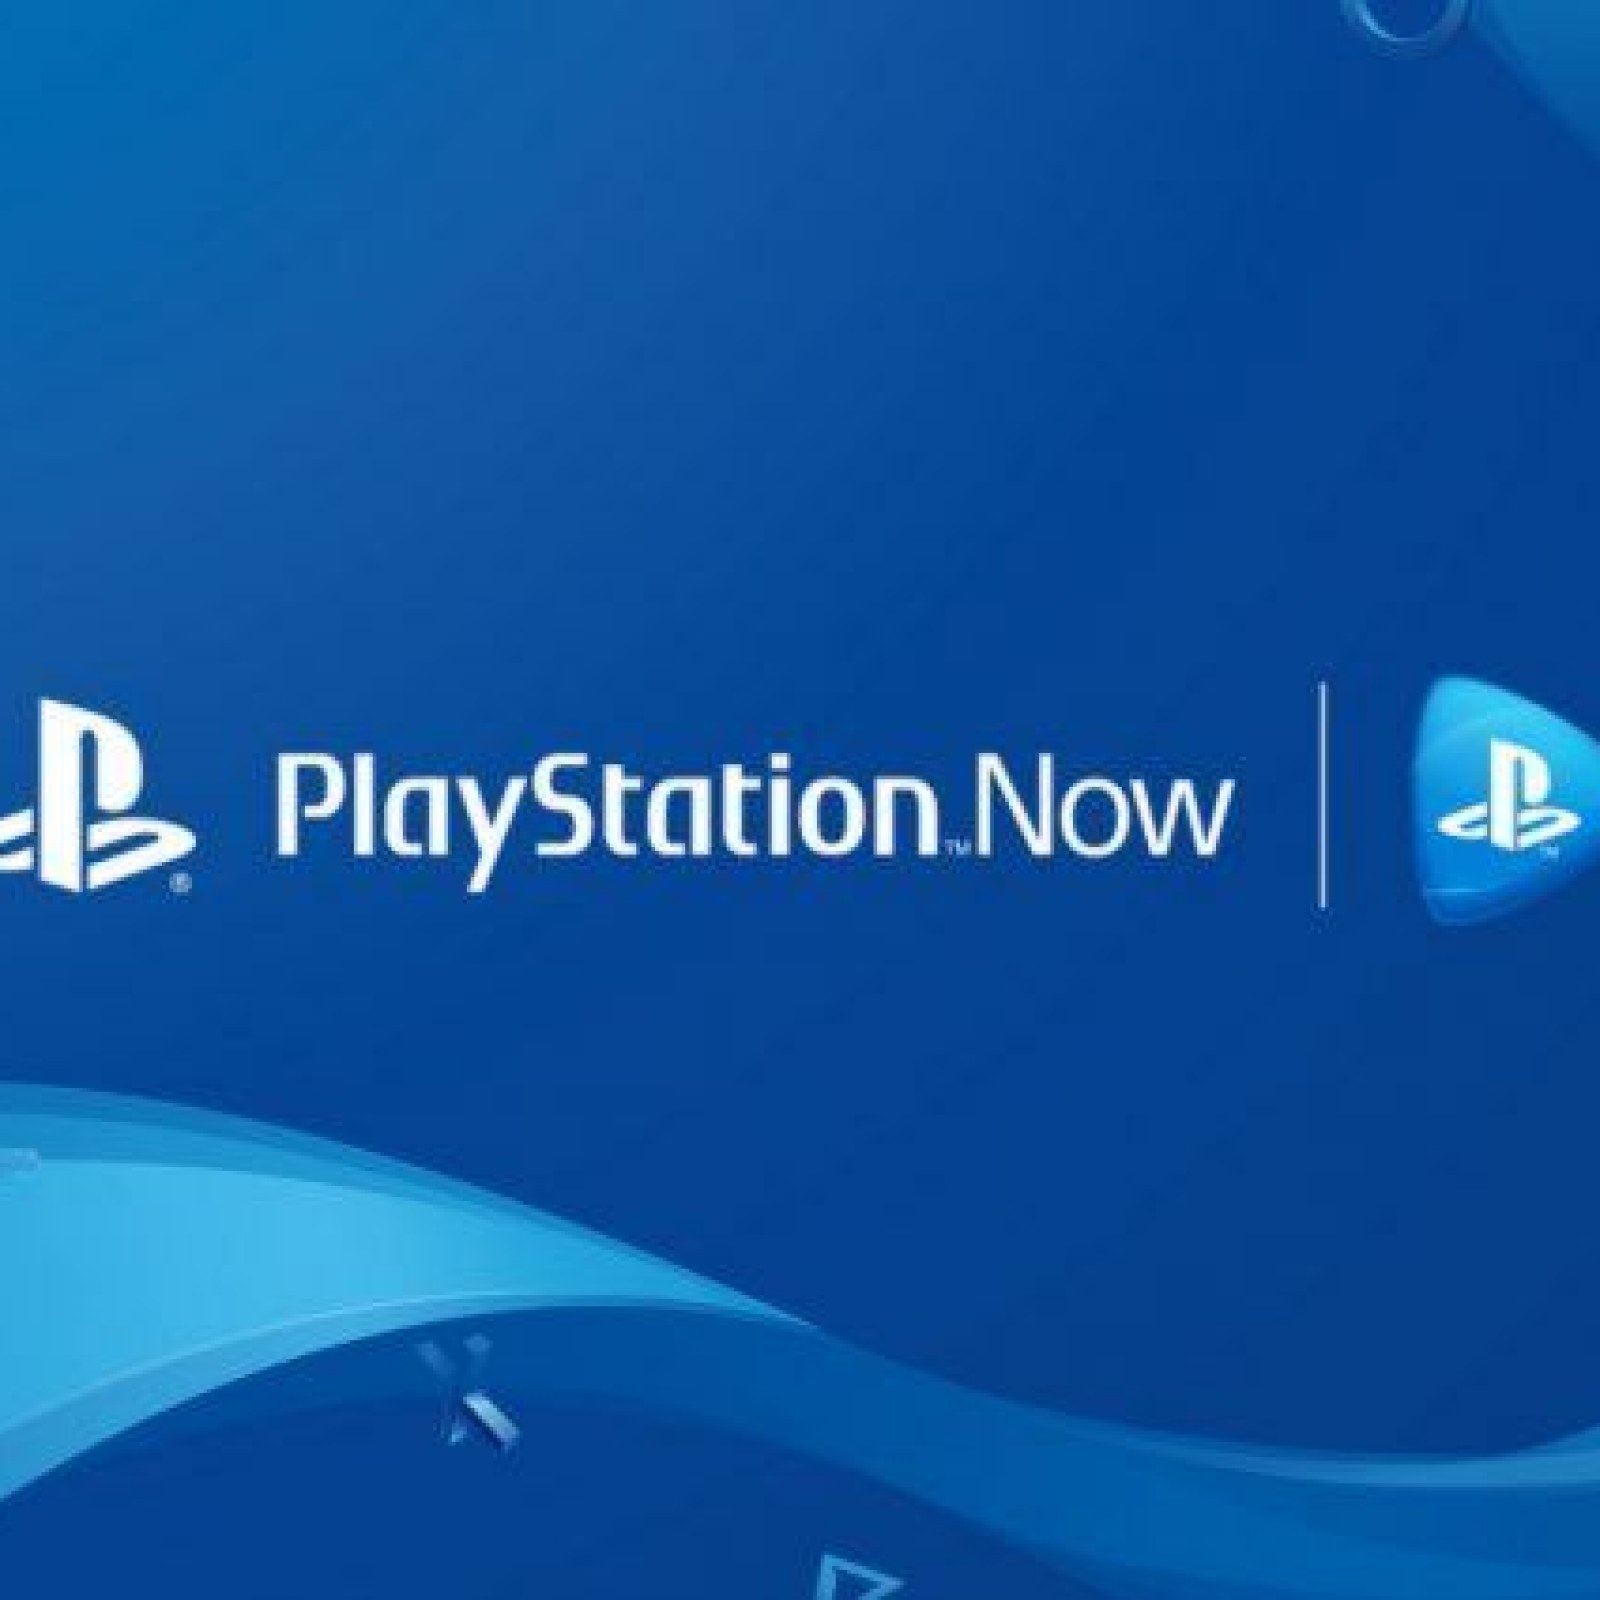 PS Now Adds Downloads For Offline Play